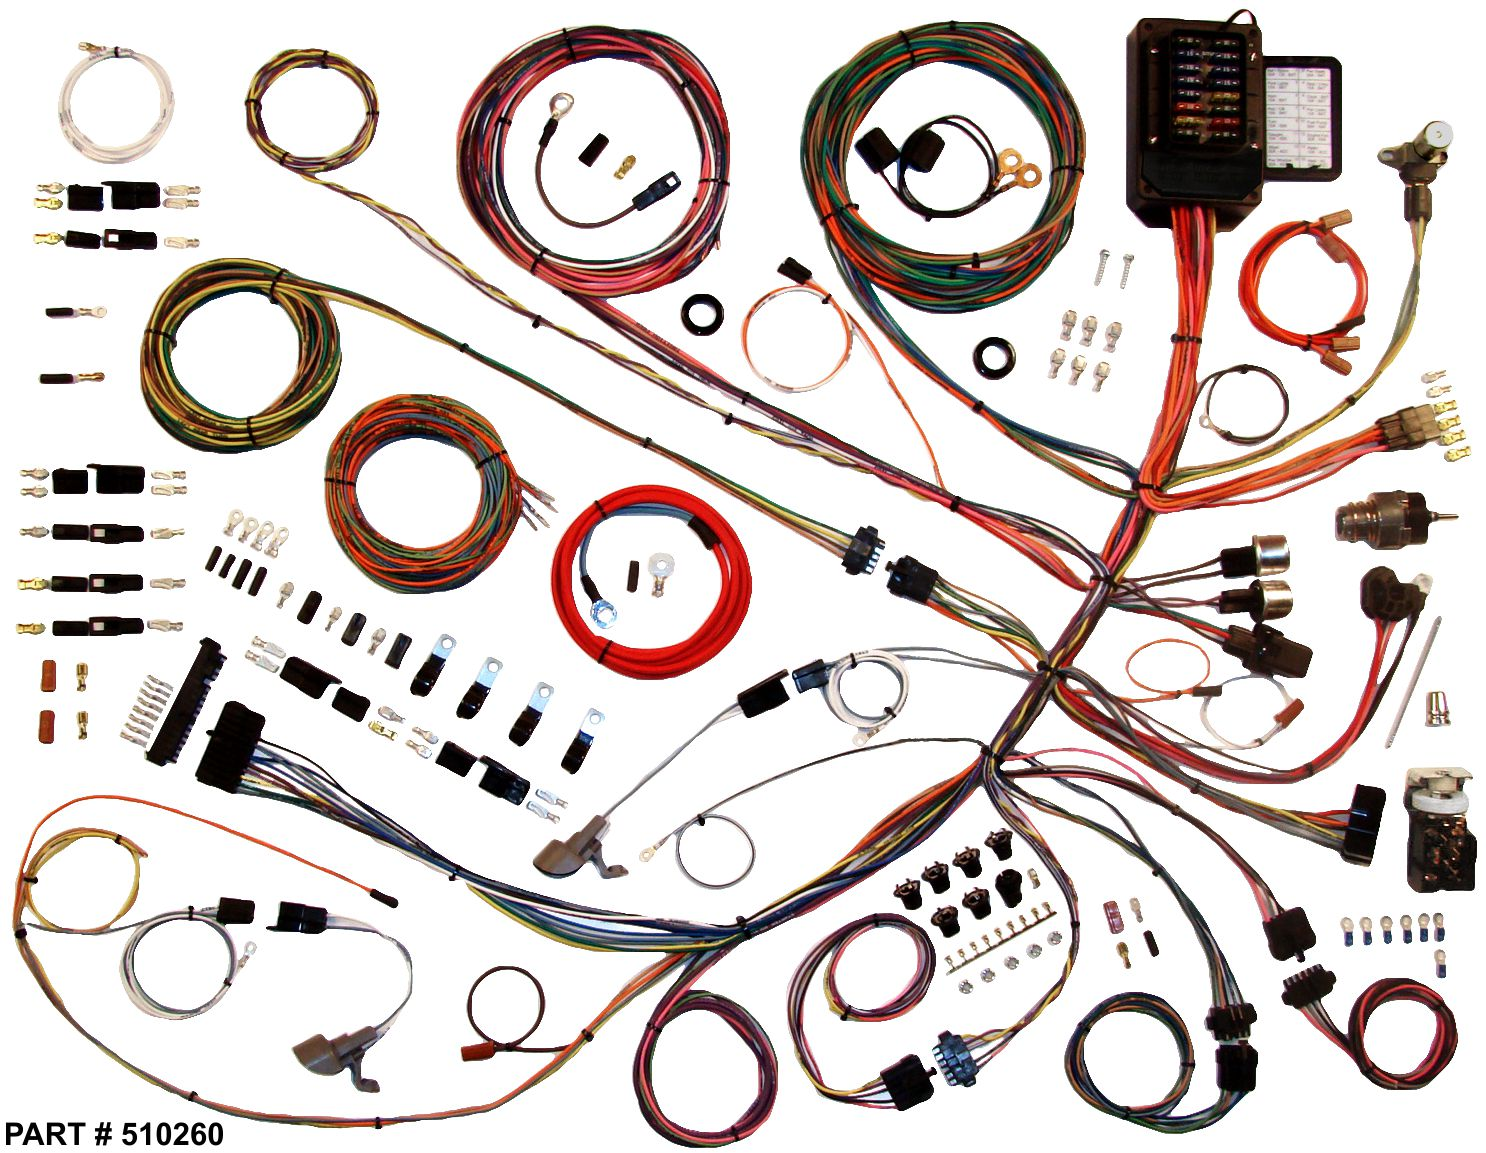 1961 66_510260 1961 1966 ford trucks restomod wiring system 1966 ford f100 wiring harness at edmiracle.co